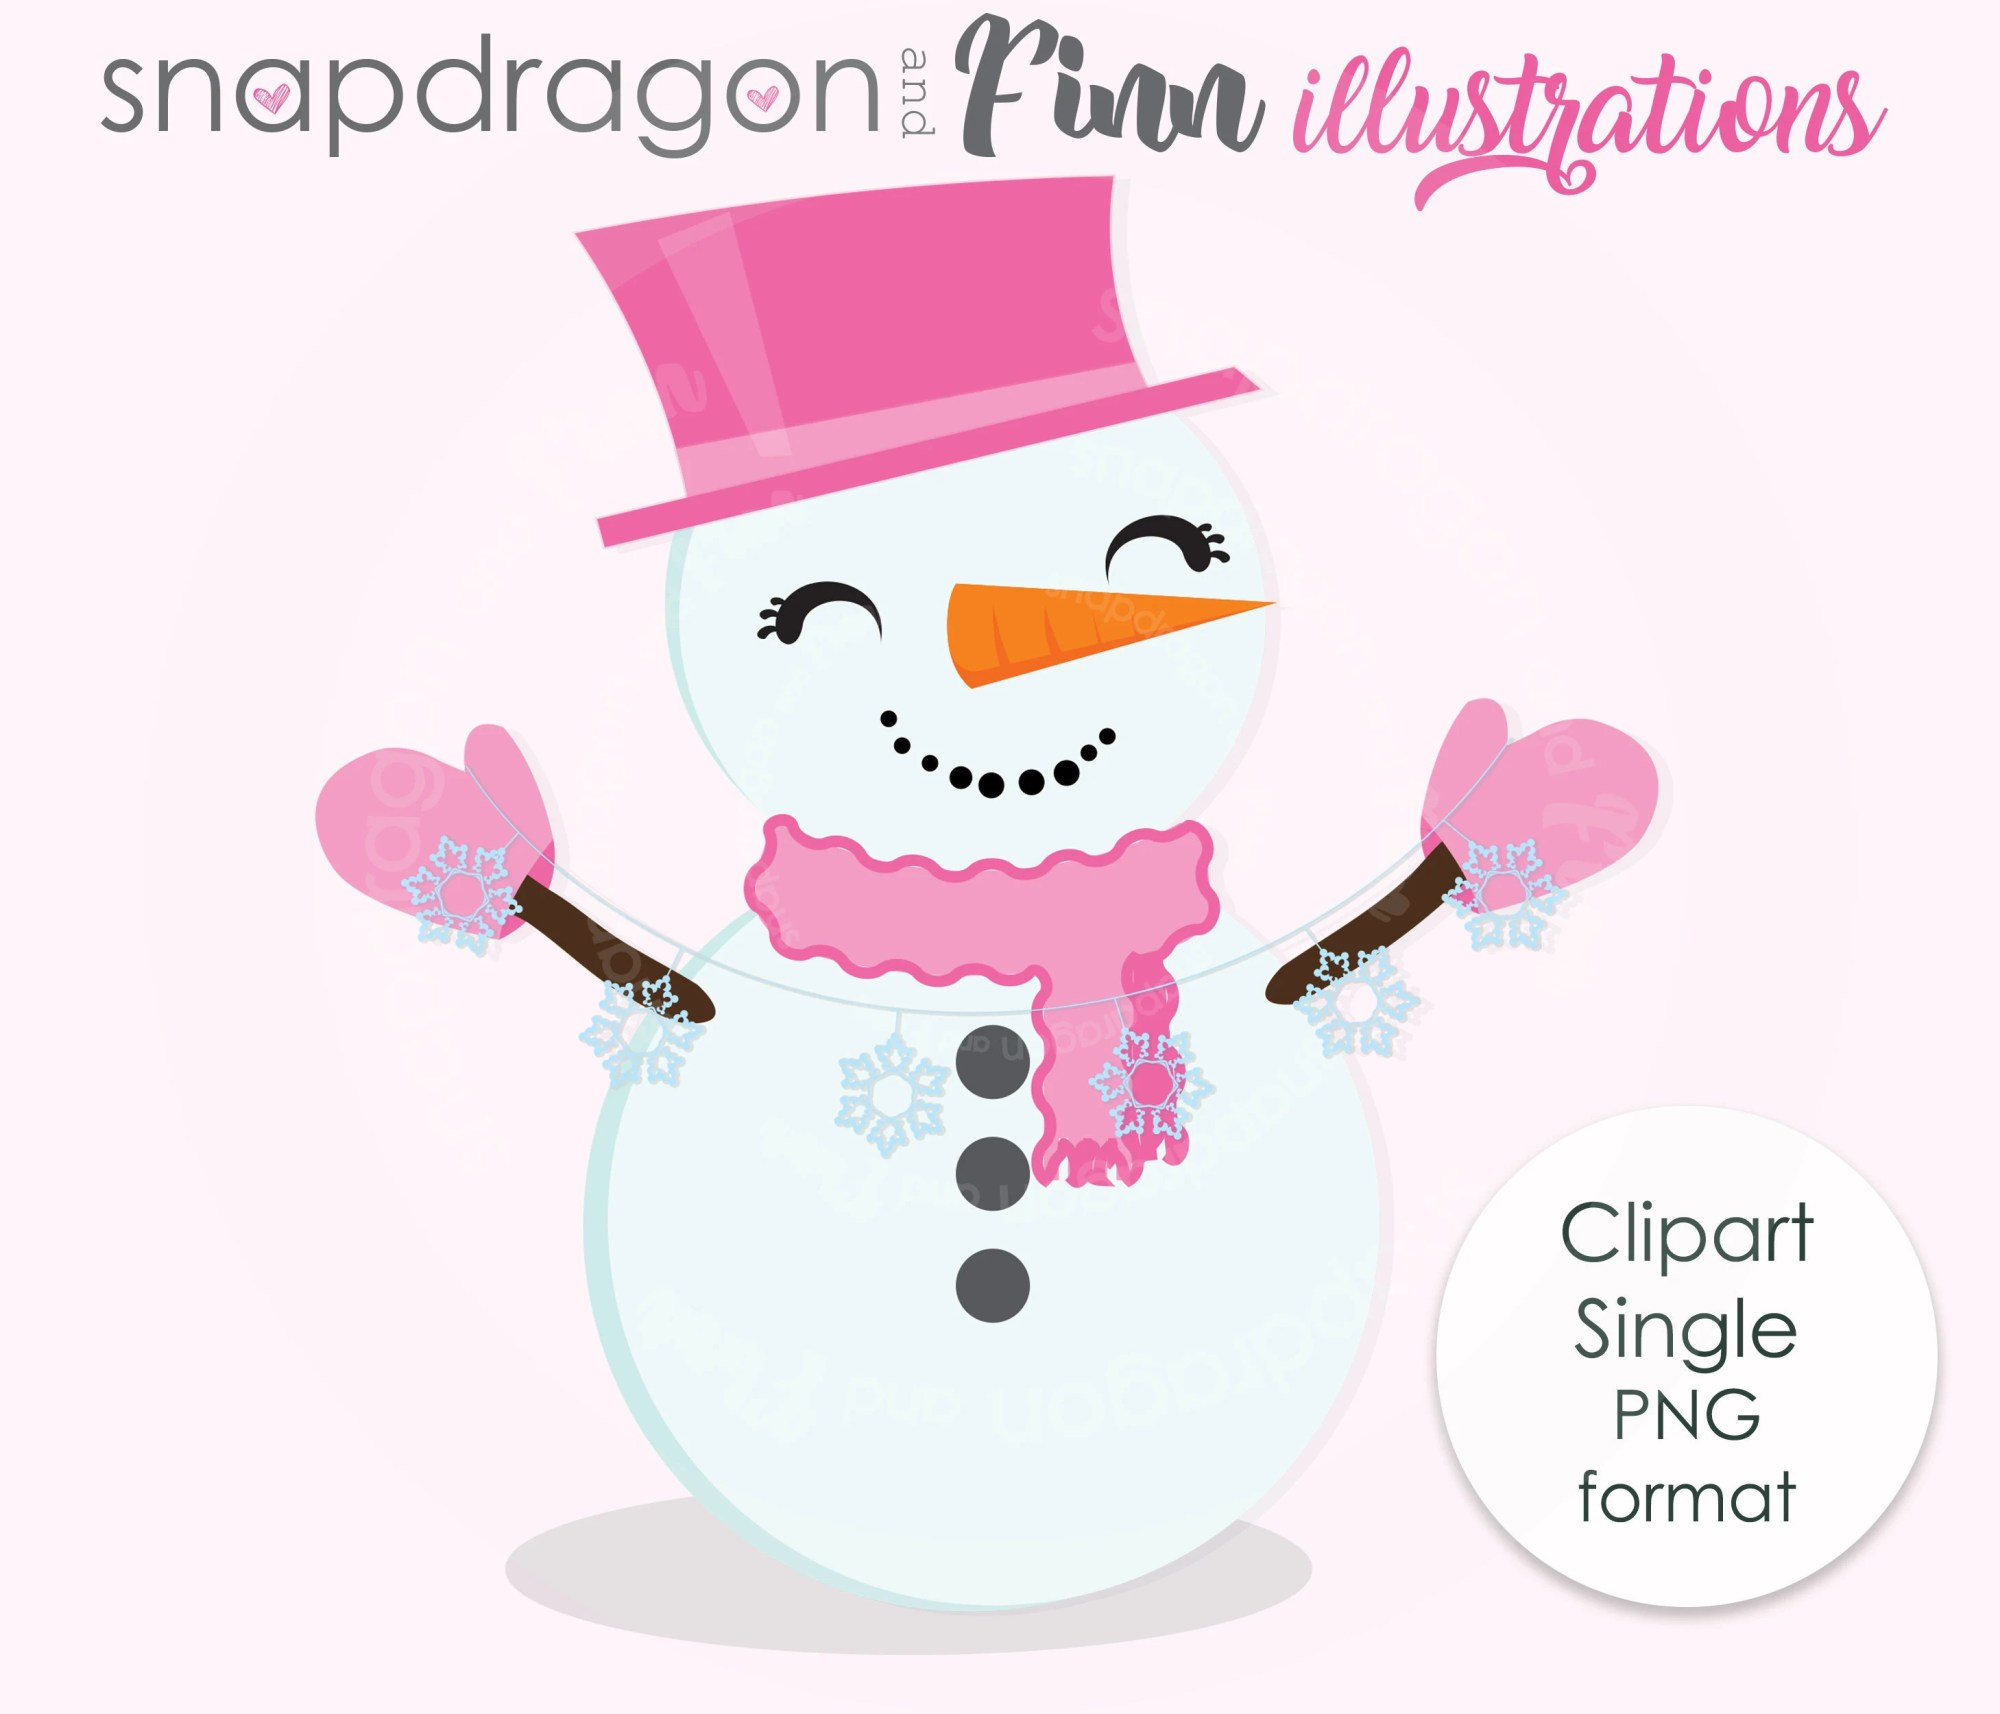 hight resolution of snowman clipart snowman cute digital clipart winter clipart christmas clipart happy snowman with scarf commercial license included